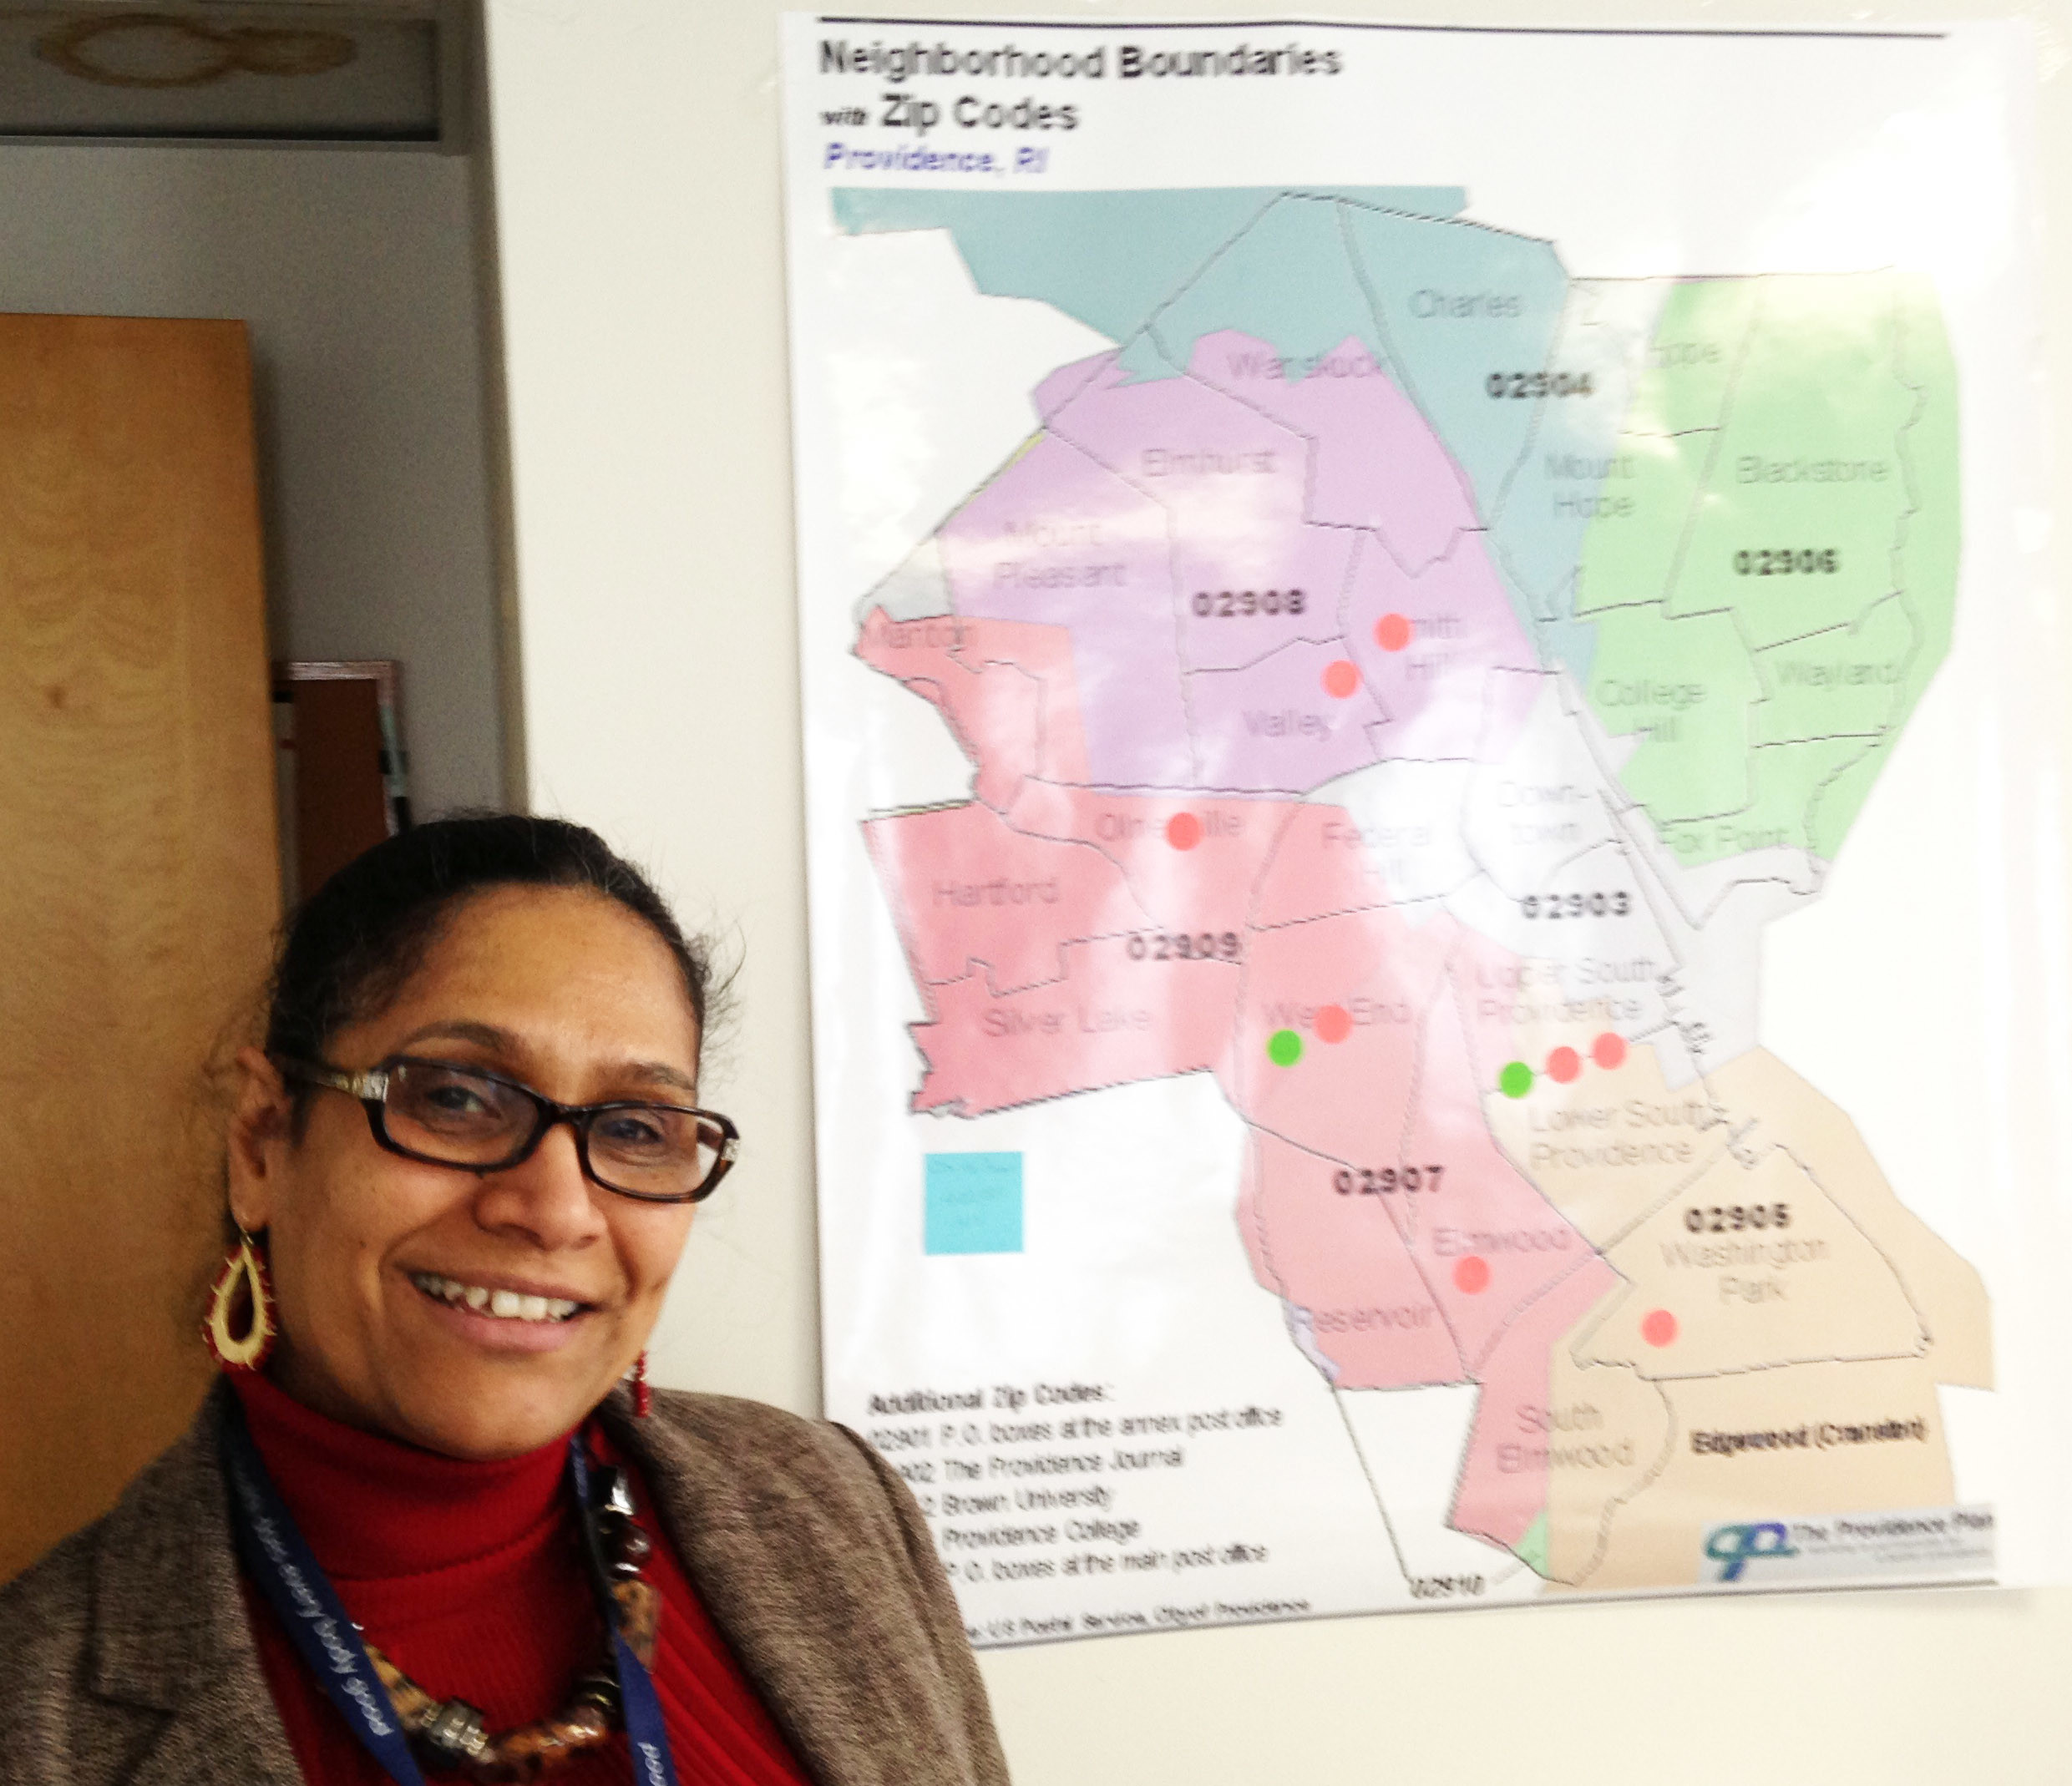 Ana Novais, the executive director of the Division of Community, Family Health and Equity at the R.I. Department of Health, is coordinating the new initiative to create 11 Health Equity Zones, one in each county in Rhode Island.